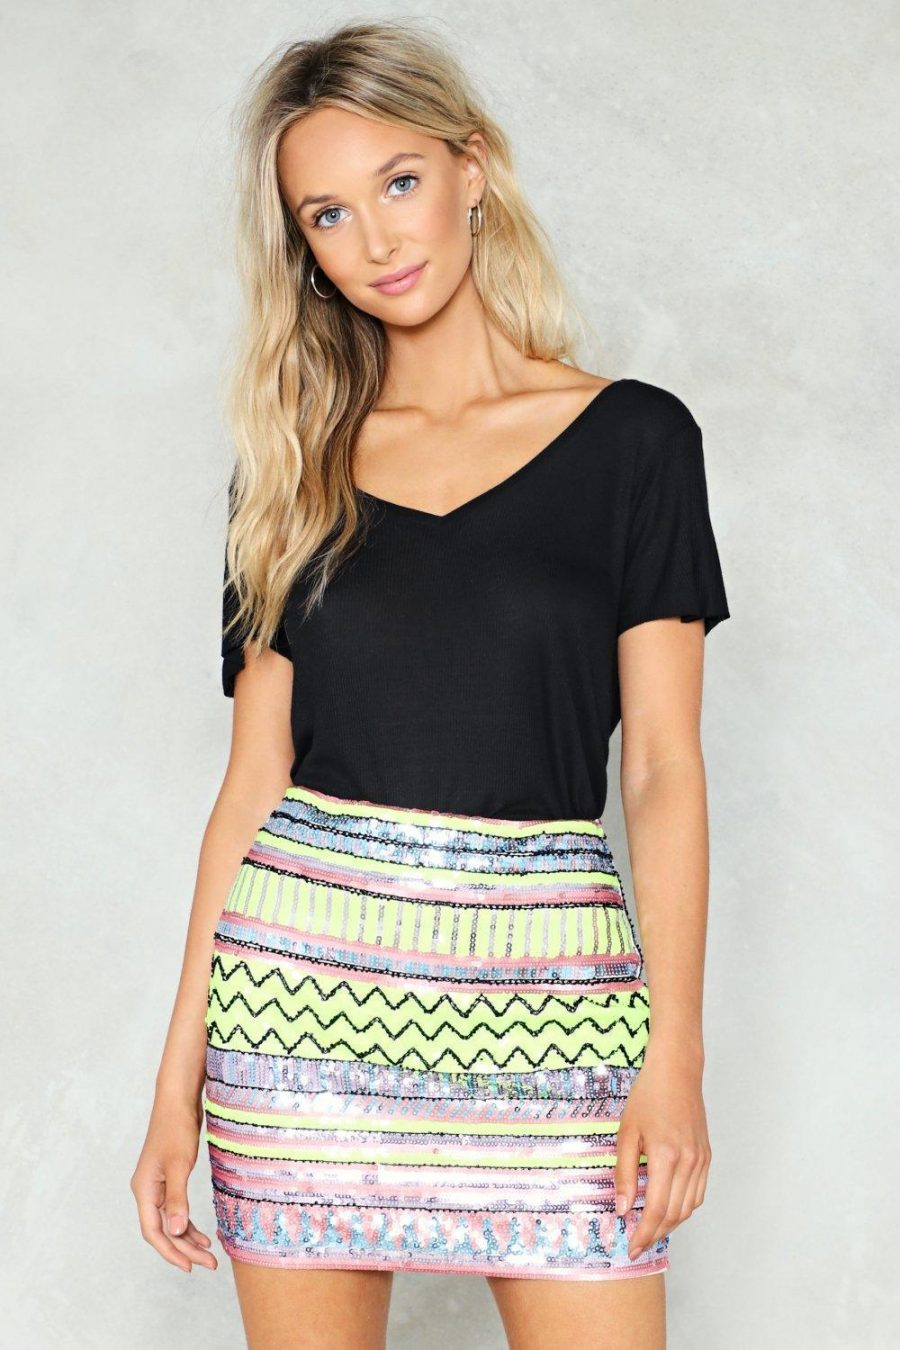 See Need Want Fashion Trend Sequinned Skirt Nasty Gal